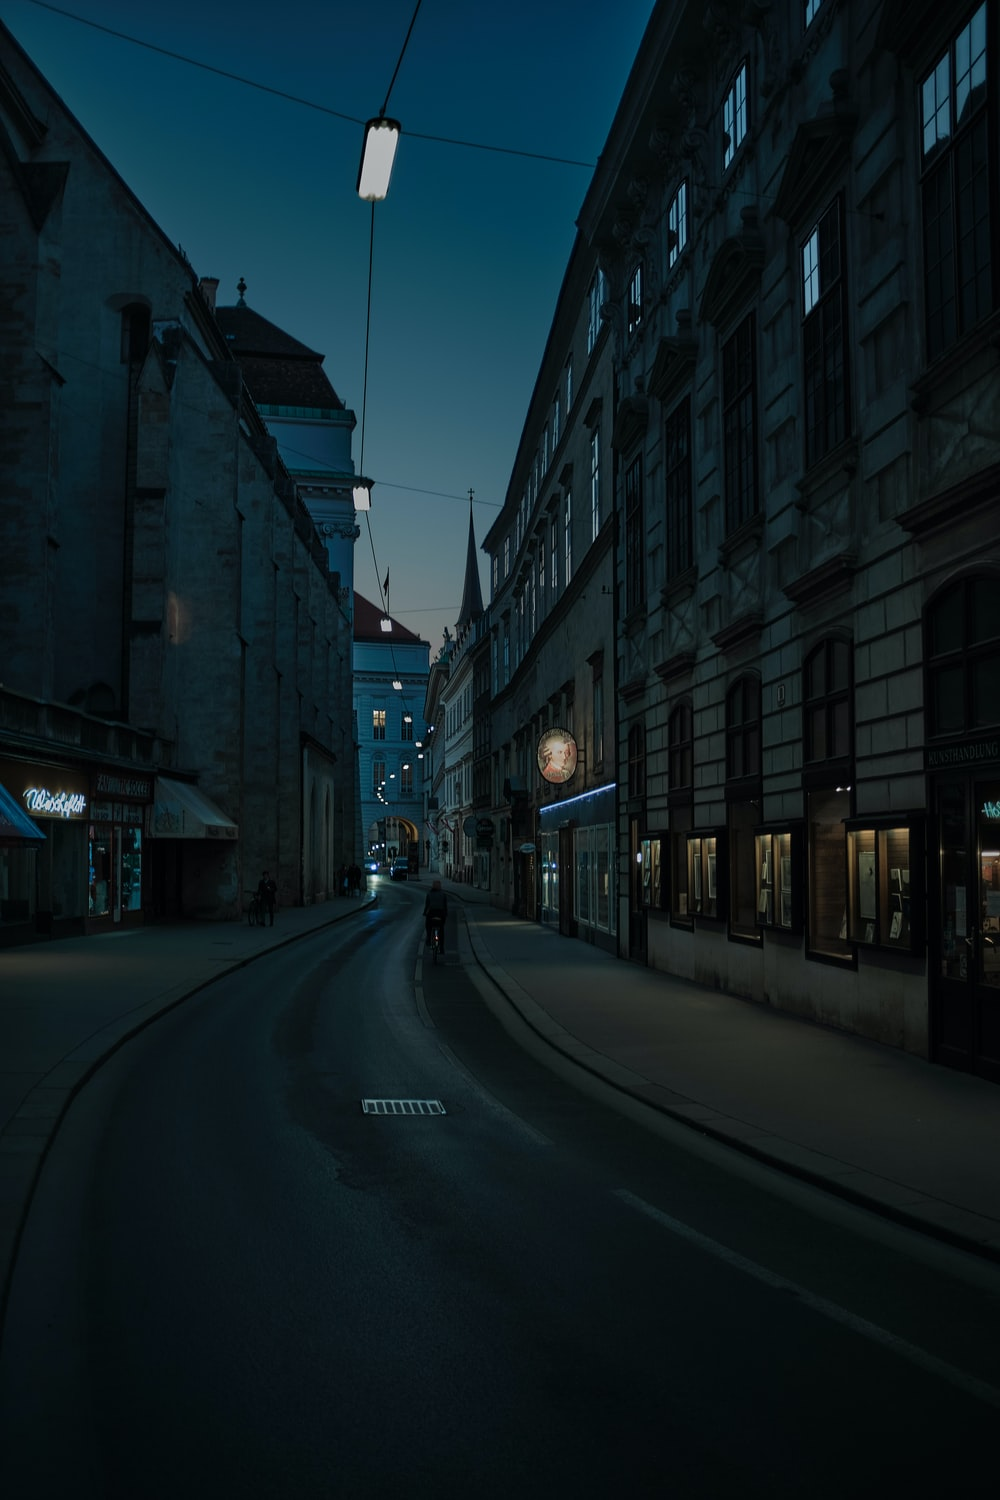 empty road between high rise buildings during night time